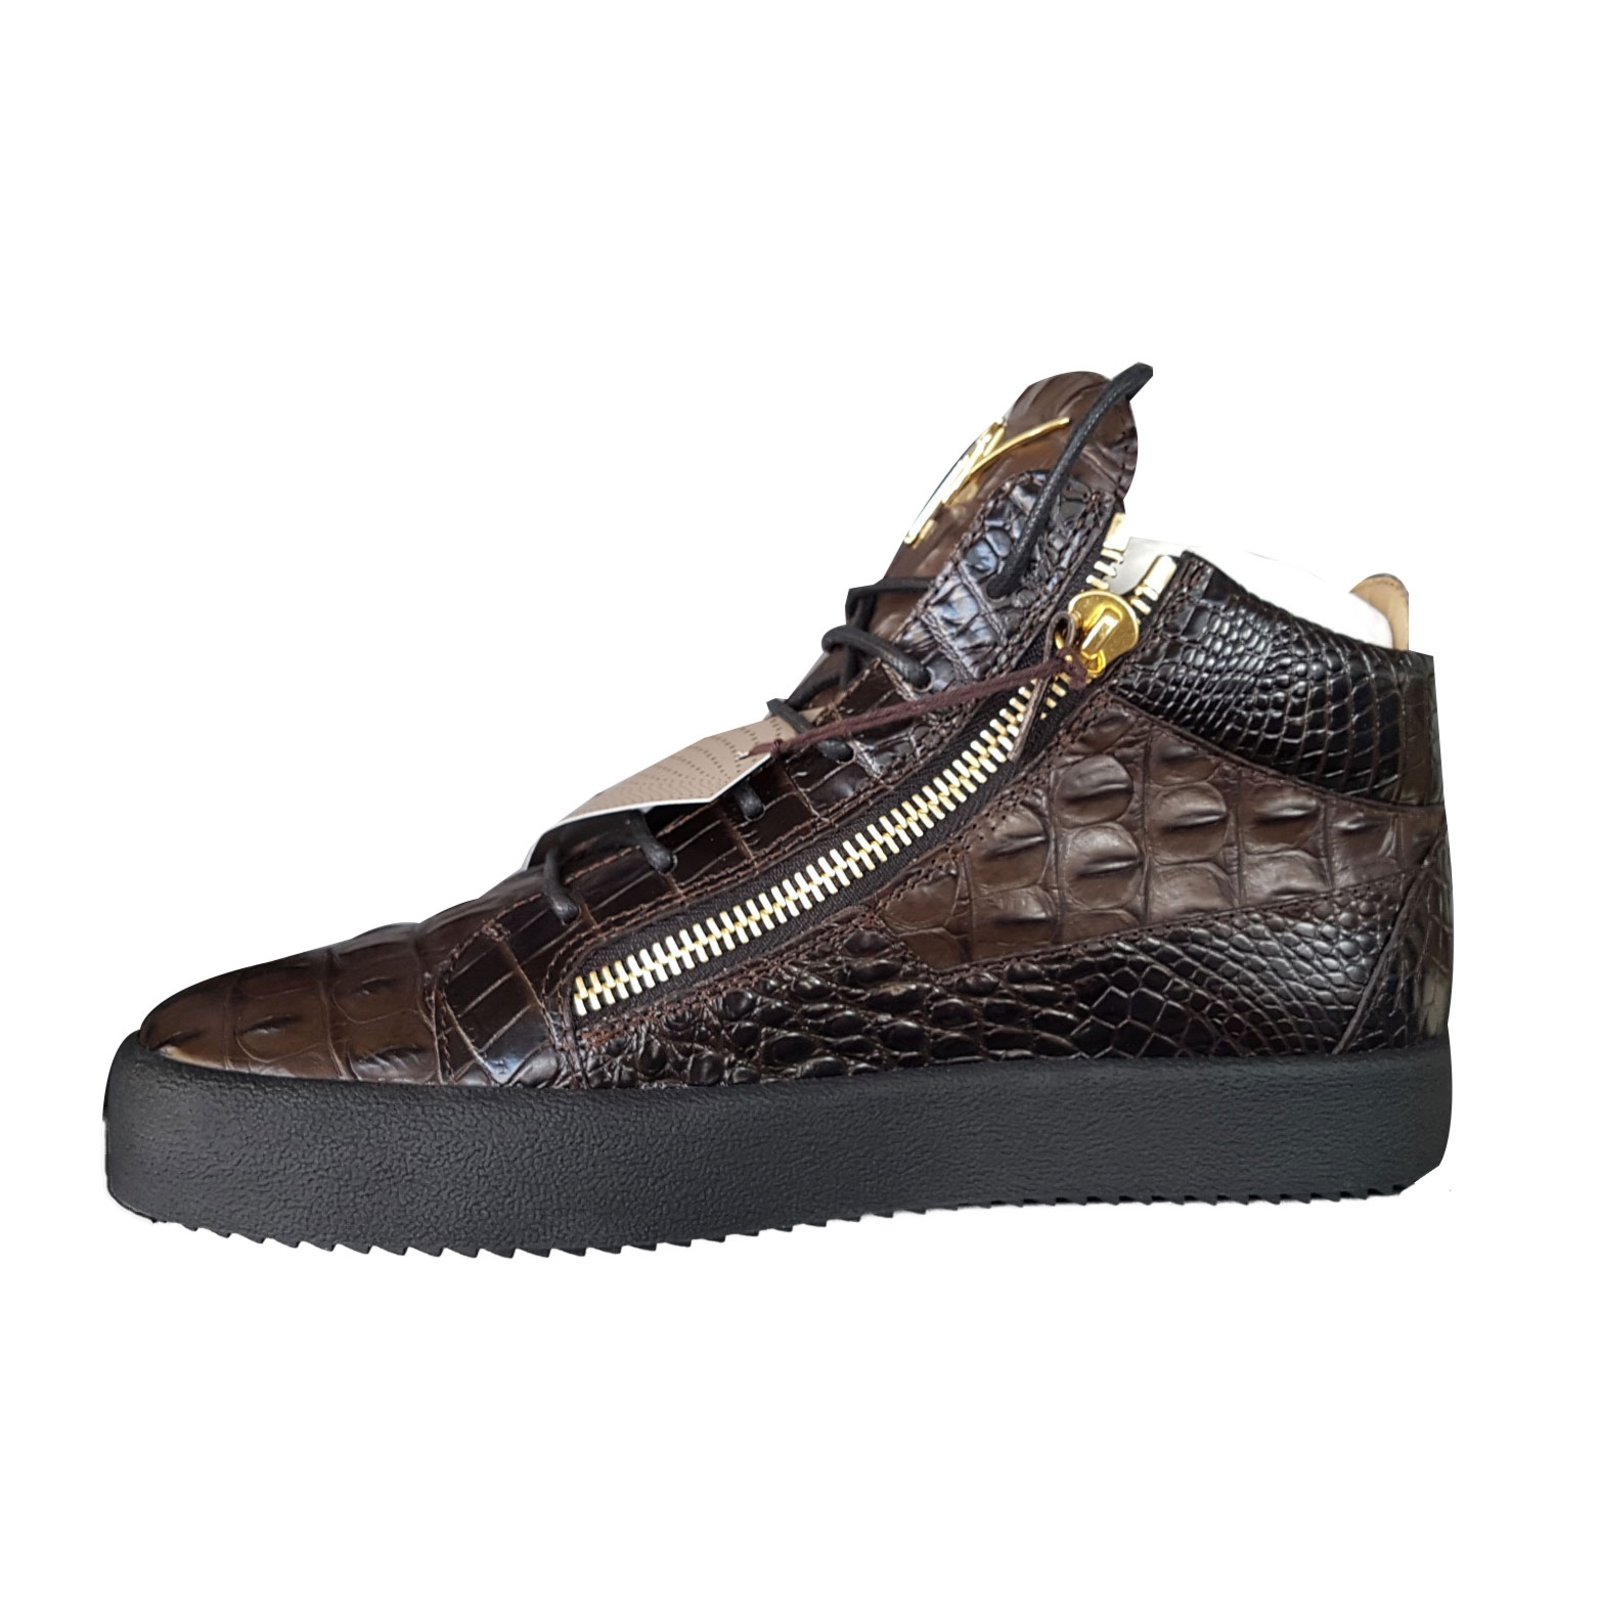 a833e6a04aaab Giuseppe Zanotti SNEAKERS Sneakers Leather Brown ref.69486 - Joli Closet